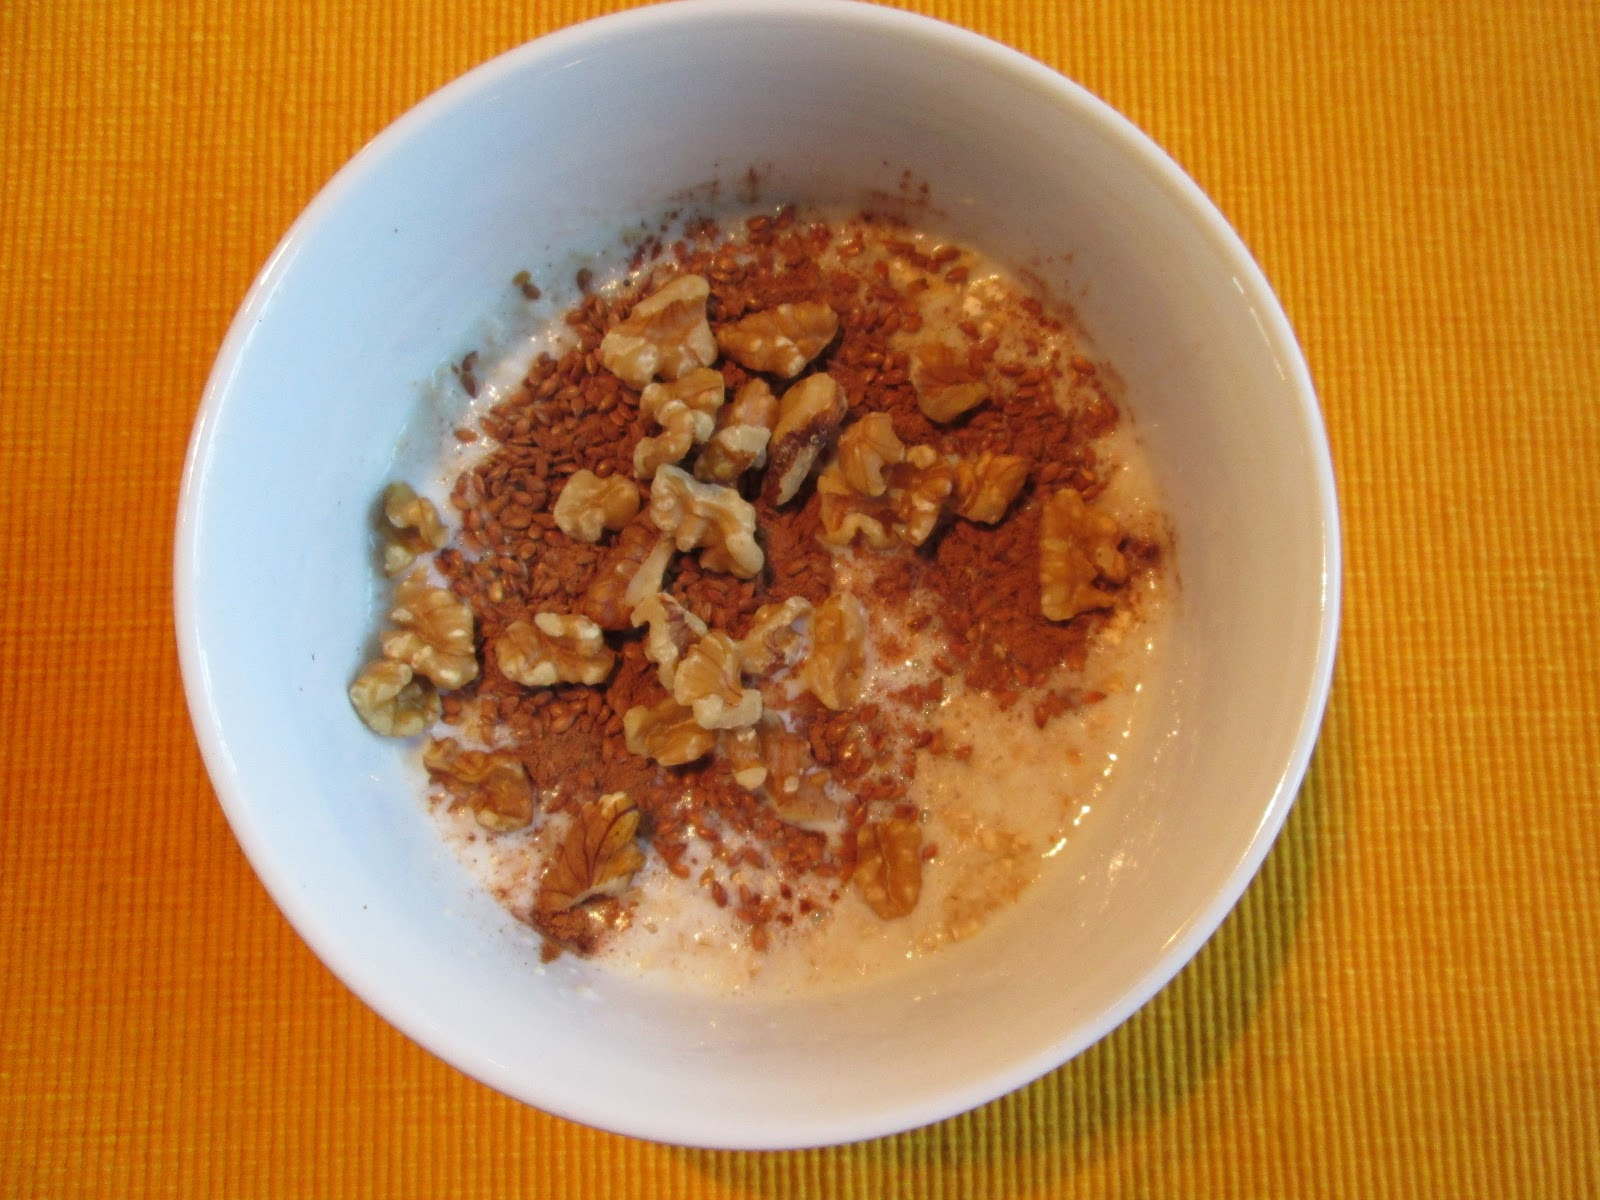 uncooked oatmeal for weight loss